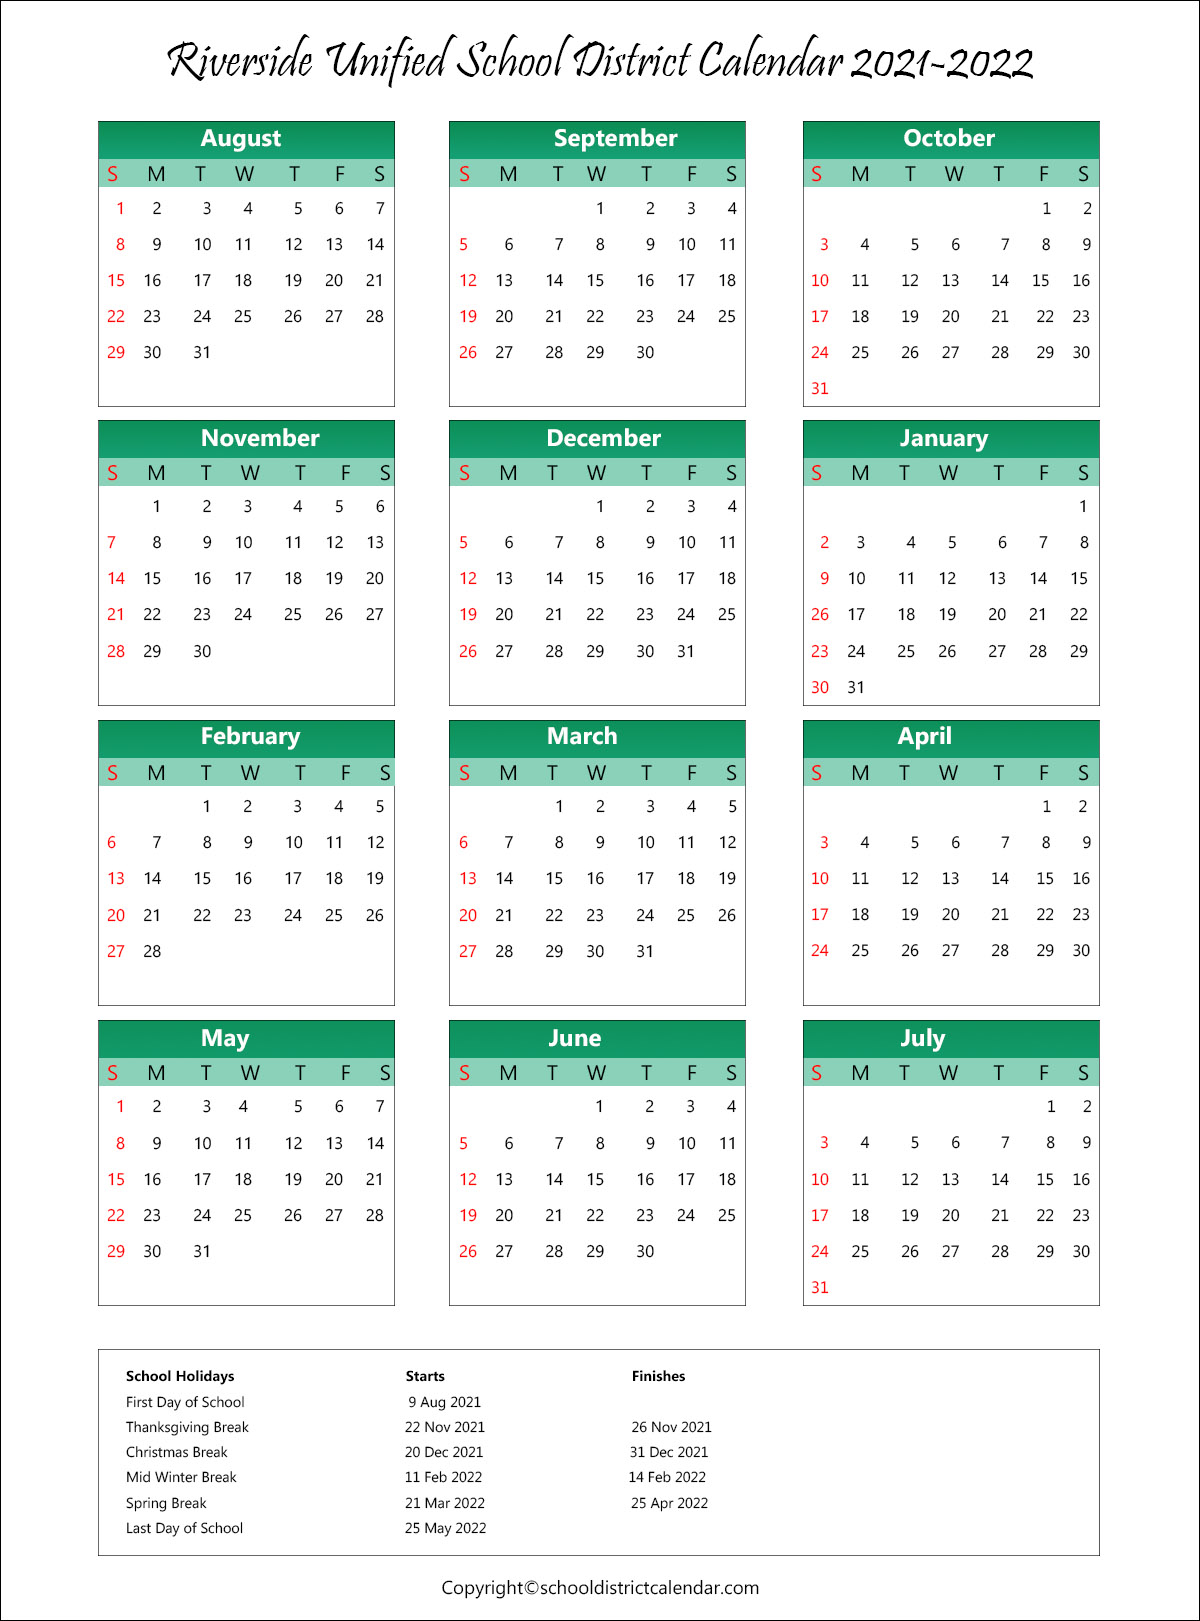 Riverside Unified School District, California Calendar Holidays 2021